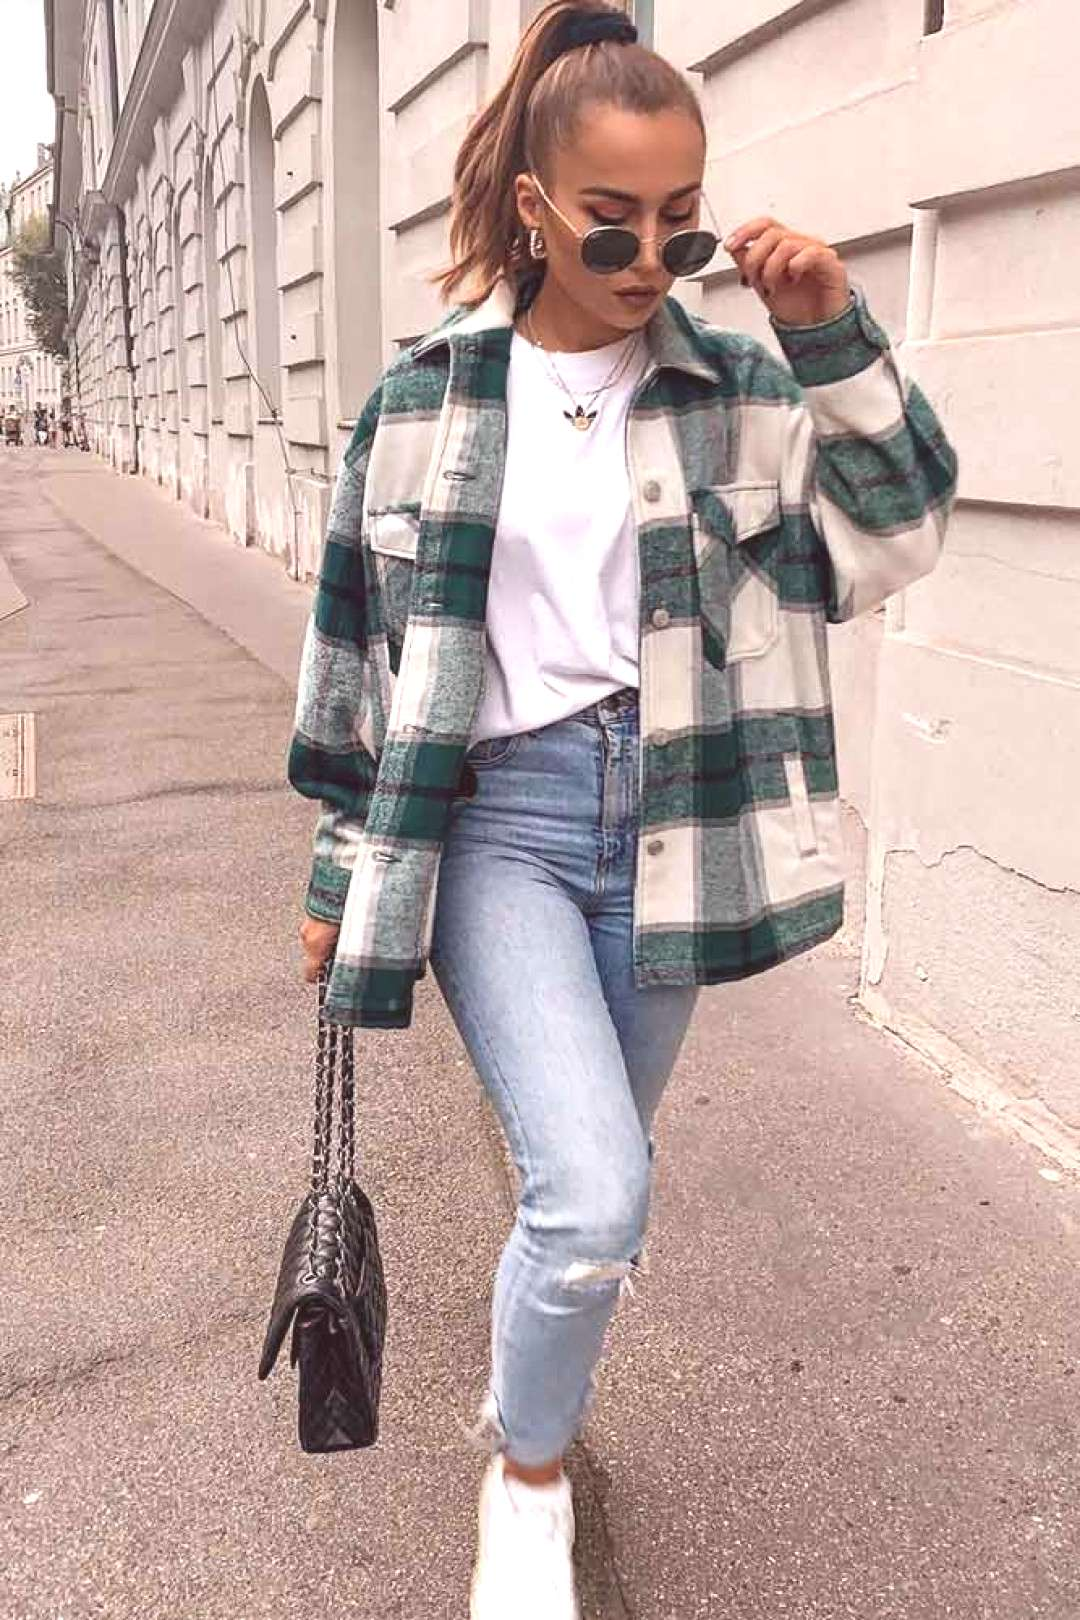 Comfy Fall Look With Flannel Shirt ★ When the fall knocks on your door, it is time to think about